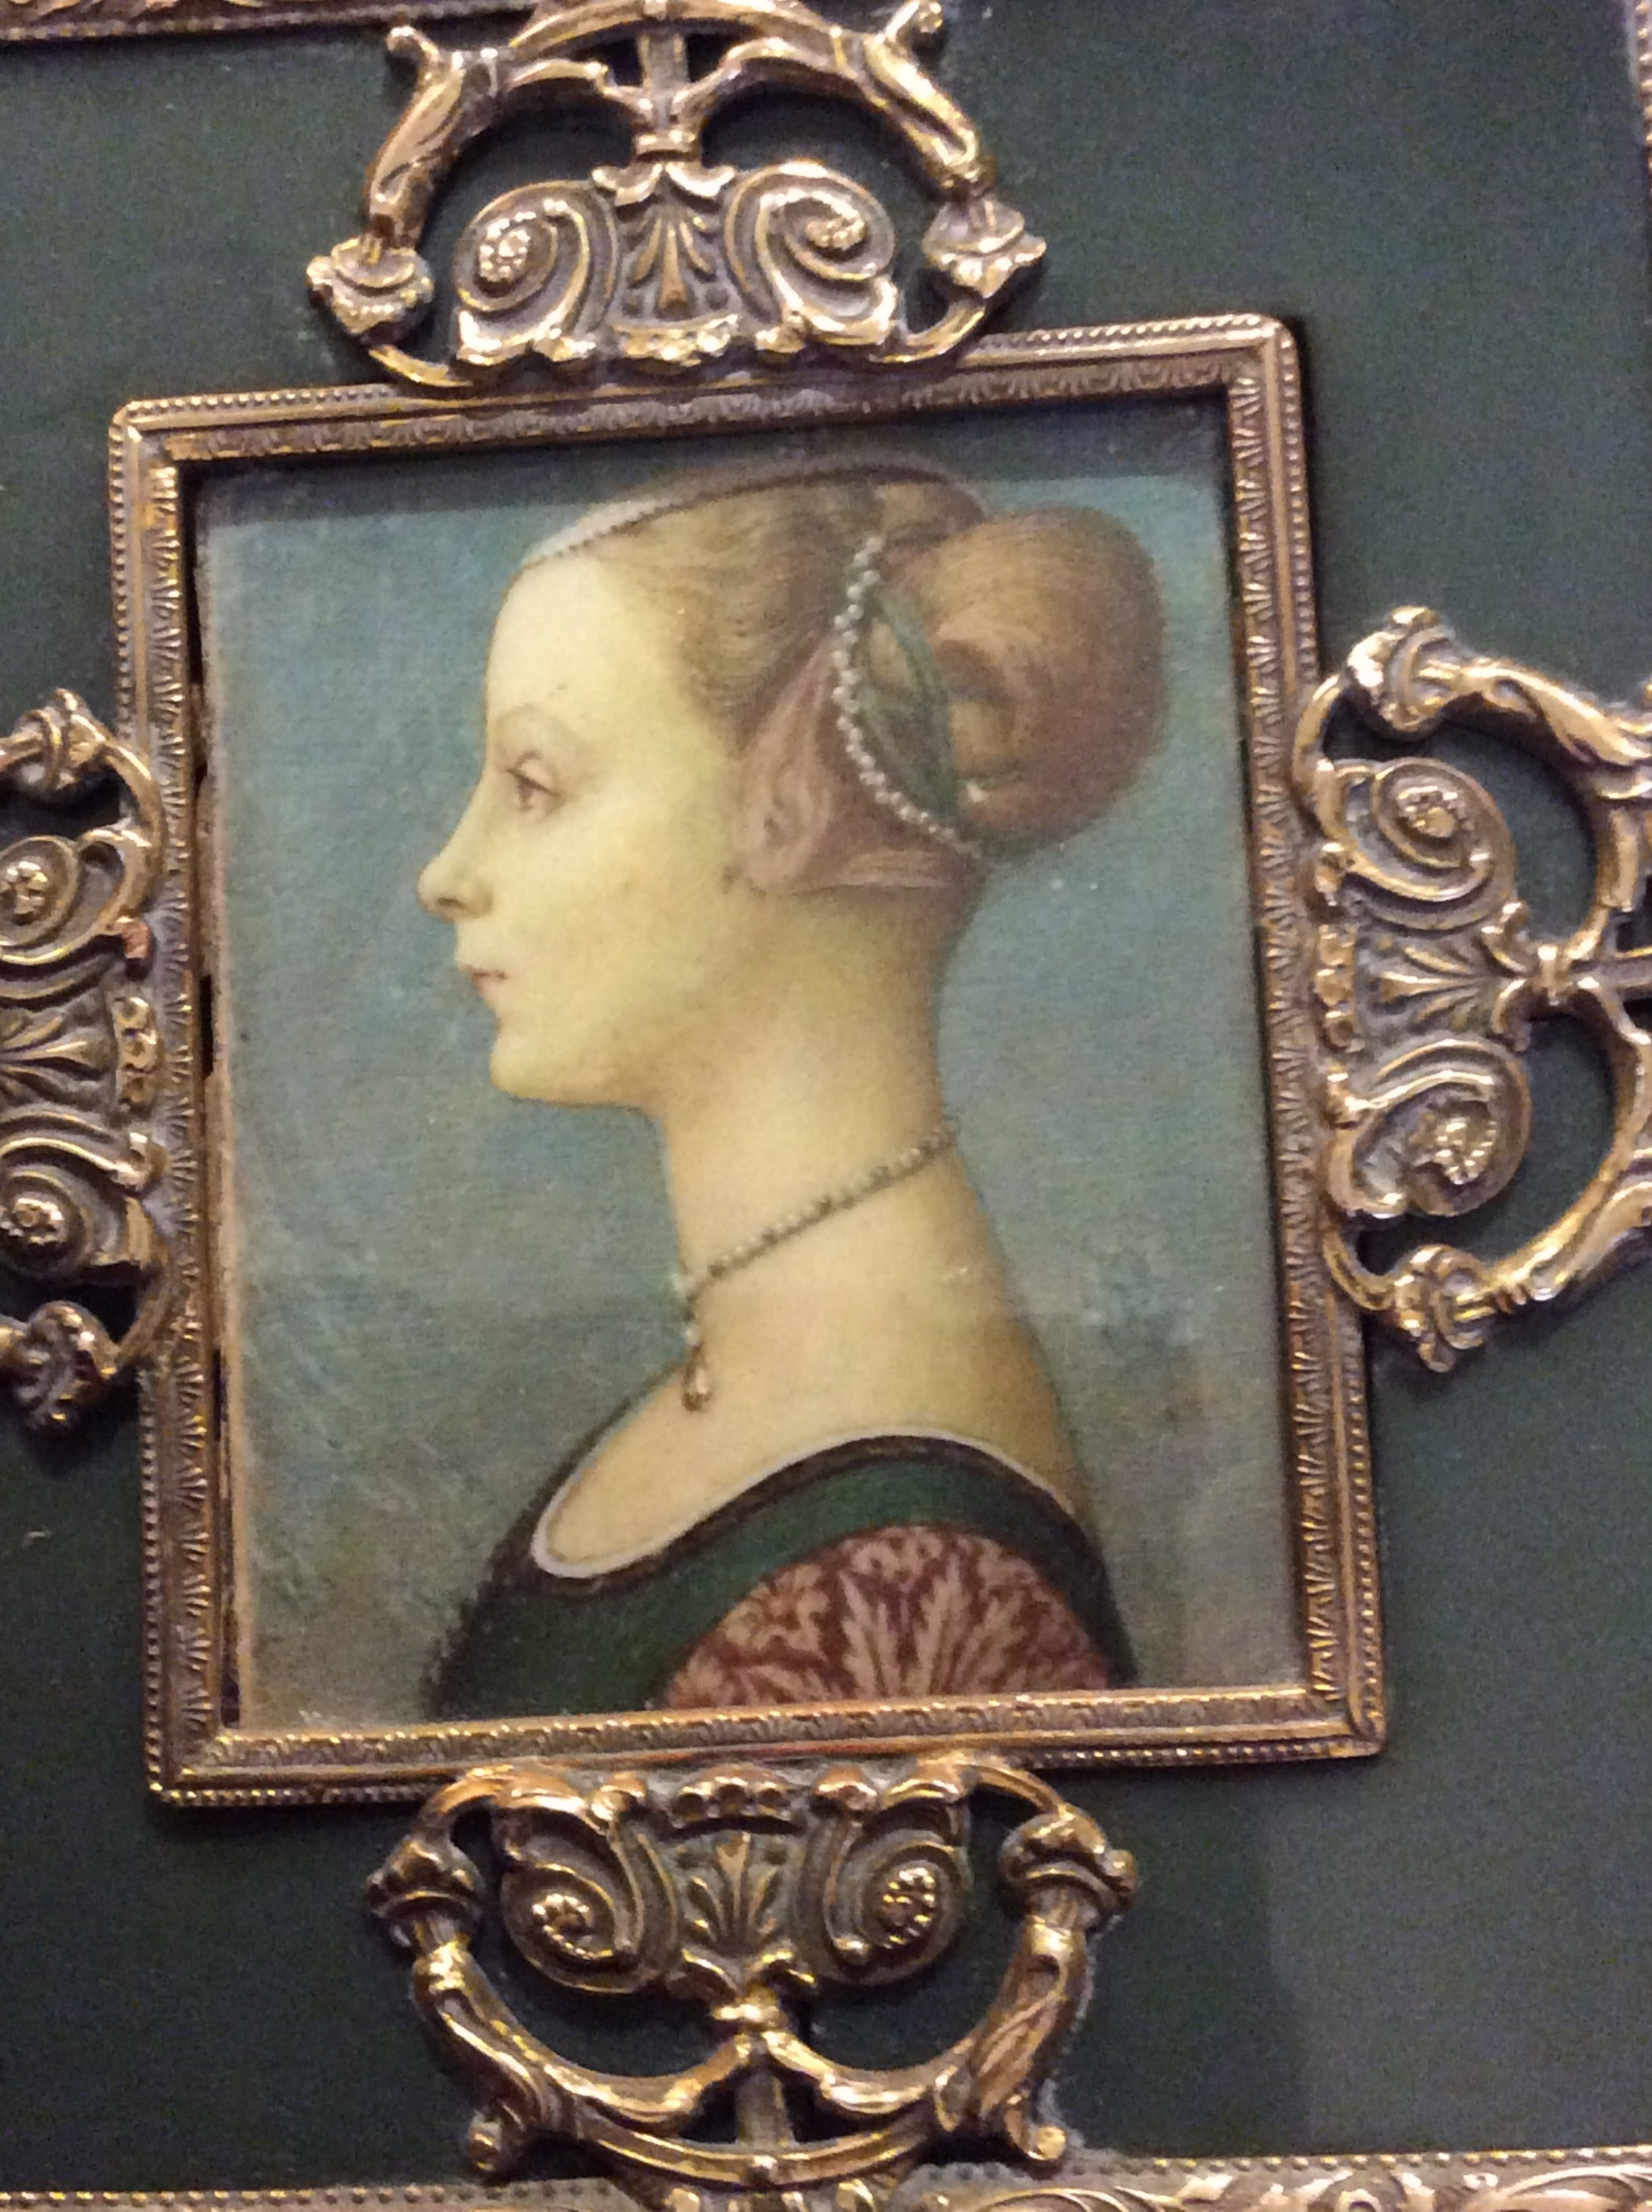 19th century minature painting portrait of a young woman